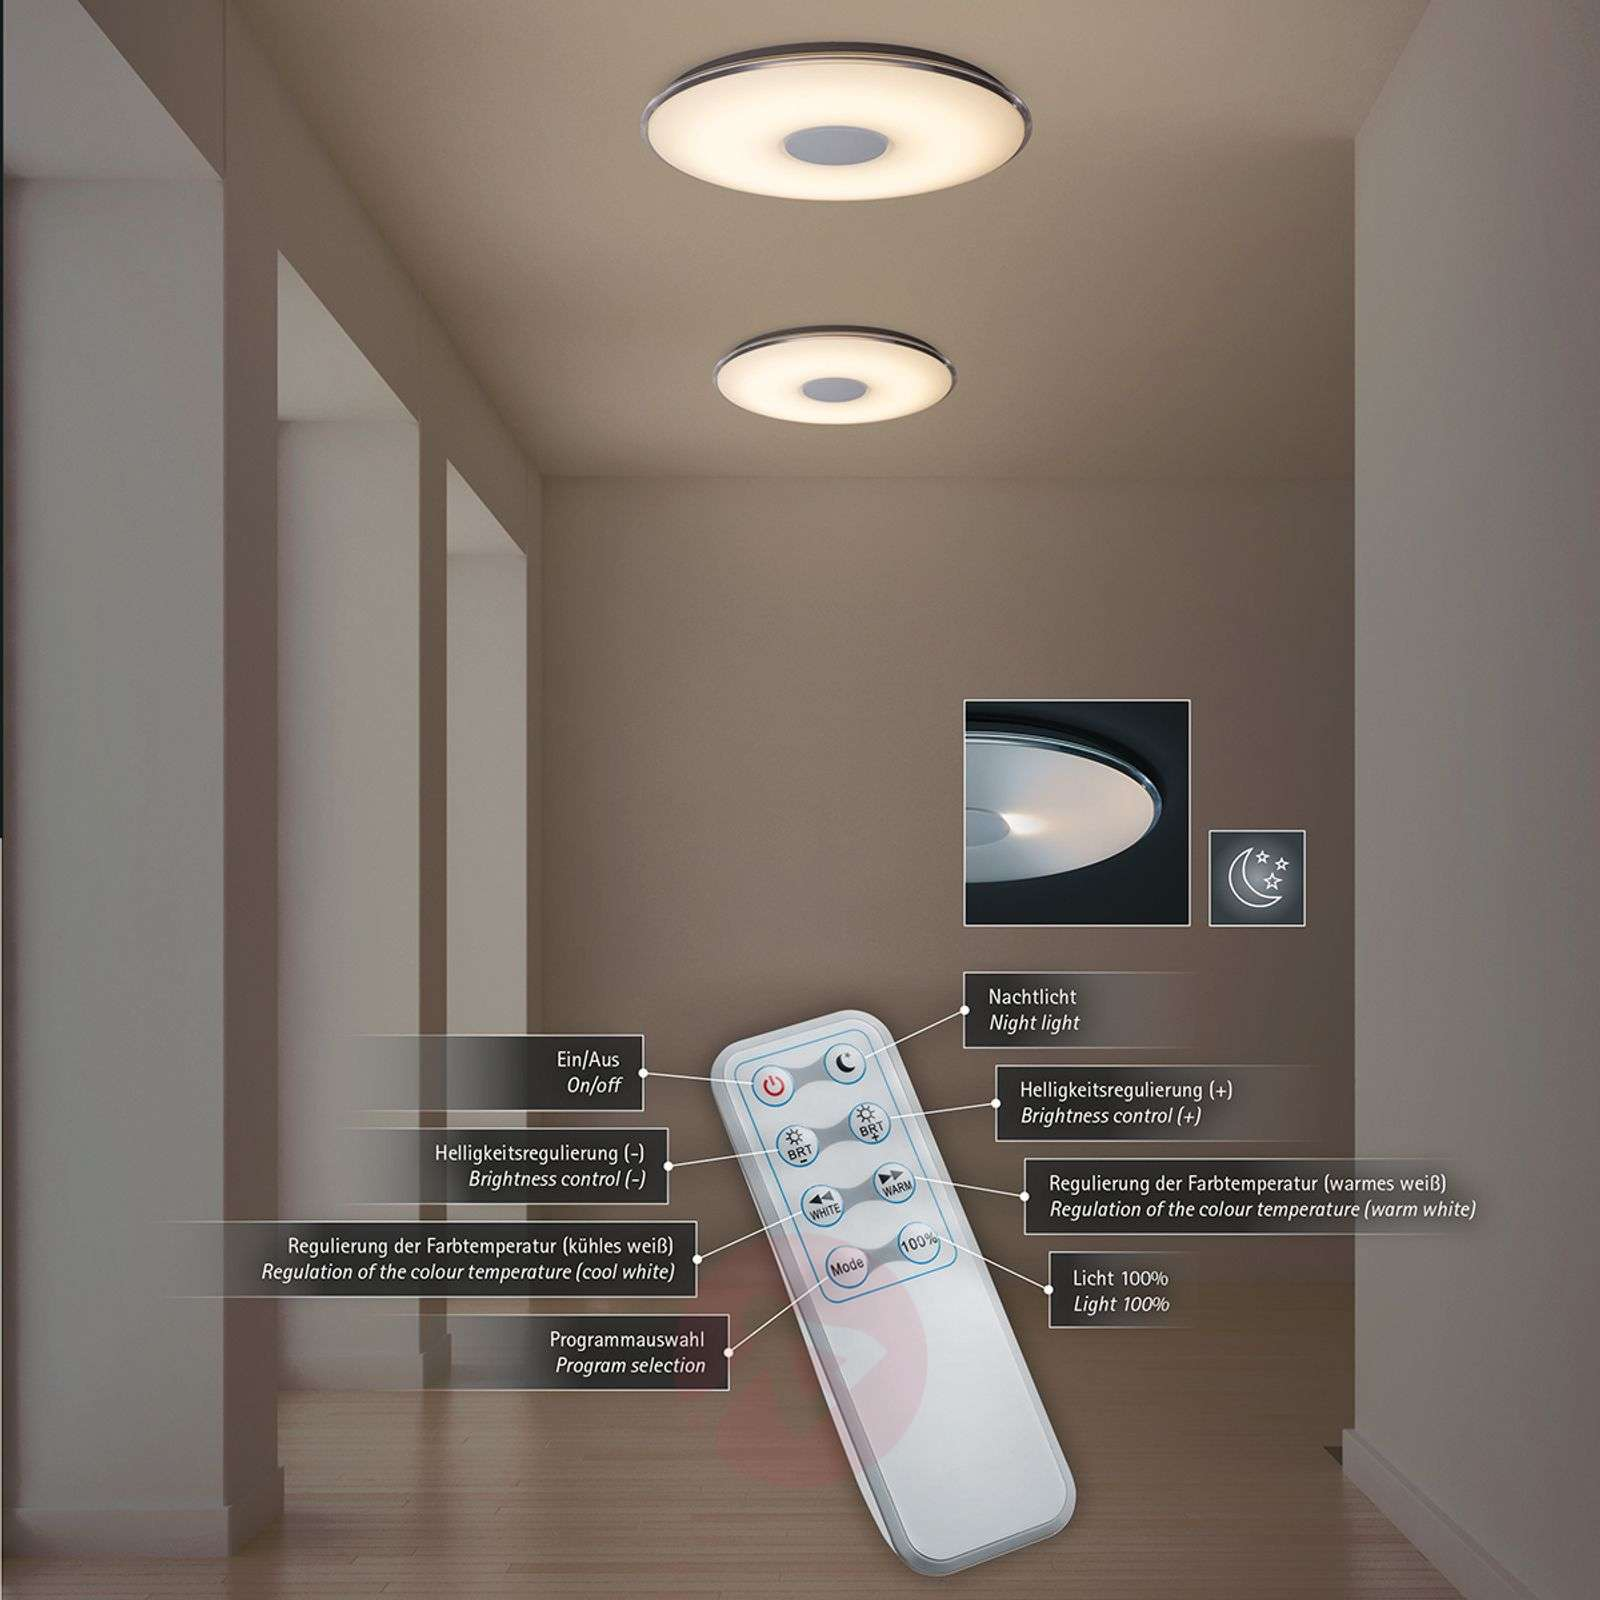 ceiling remote rings new lobby from designer aluminum lamp living for modern light ceilings led body control room in kitchen square lights item